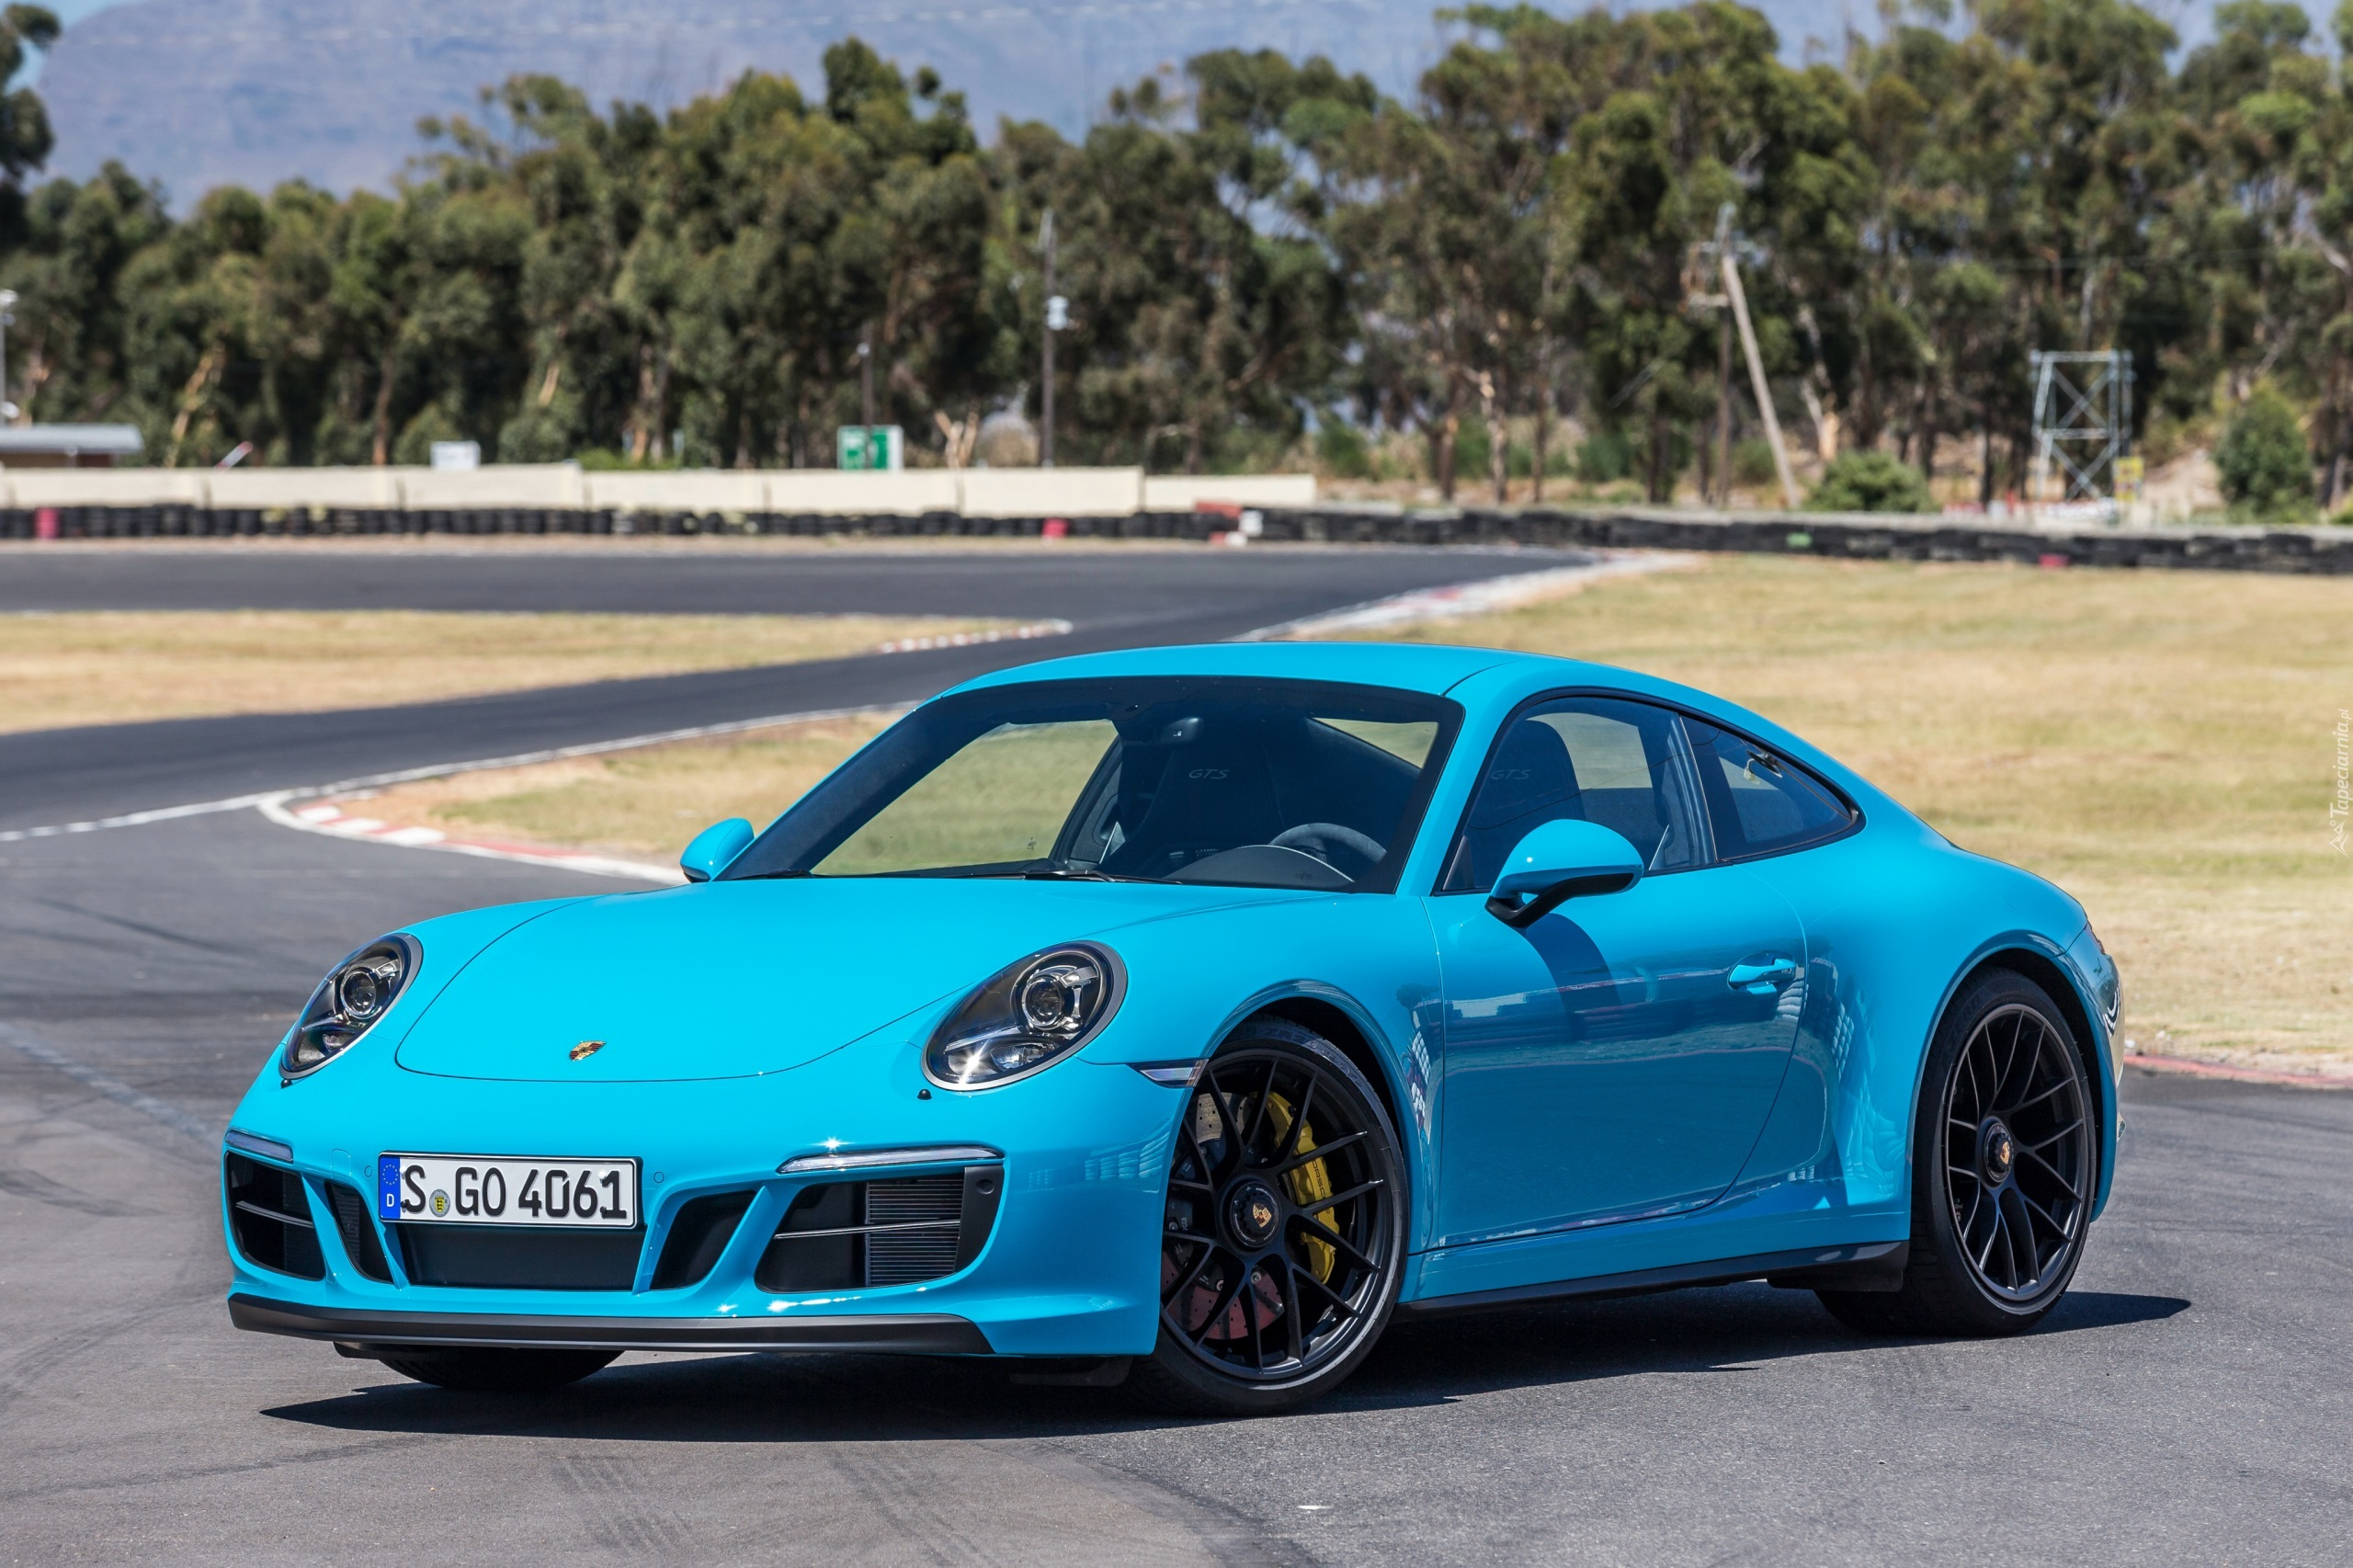 Porsche 911 Carrera GTS, Coupe, Worldwide, 2017